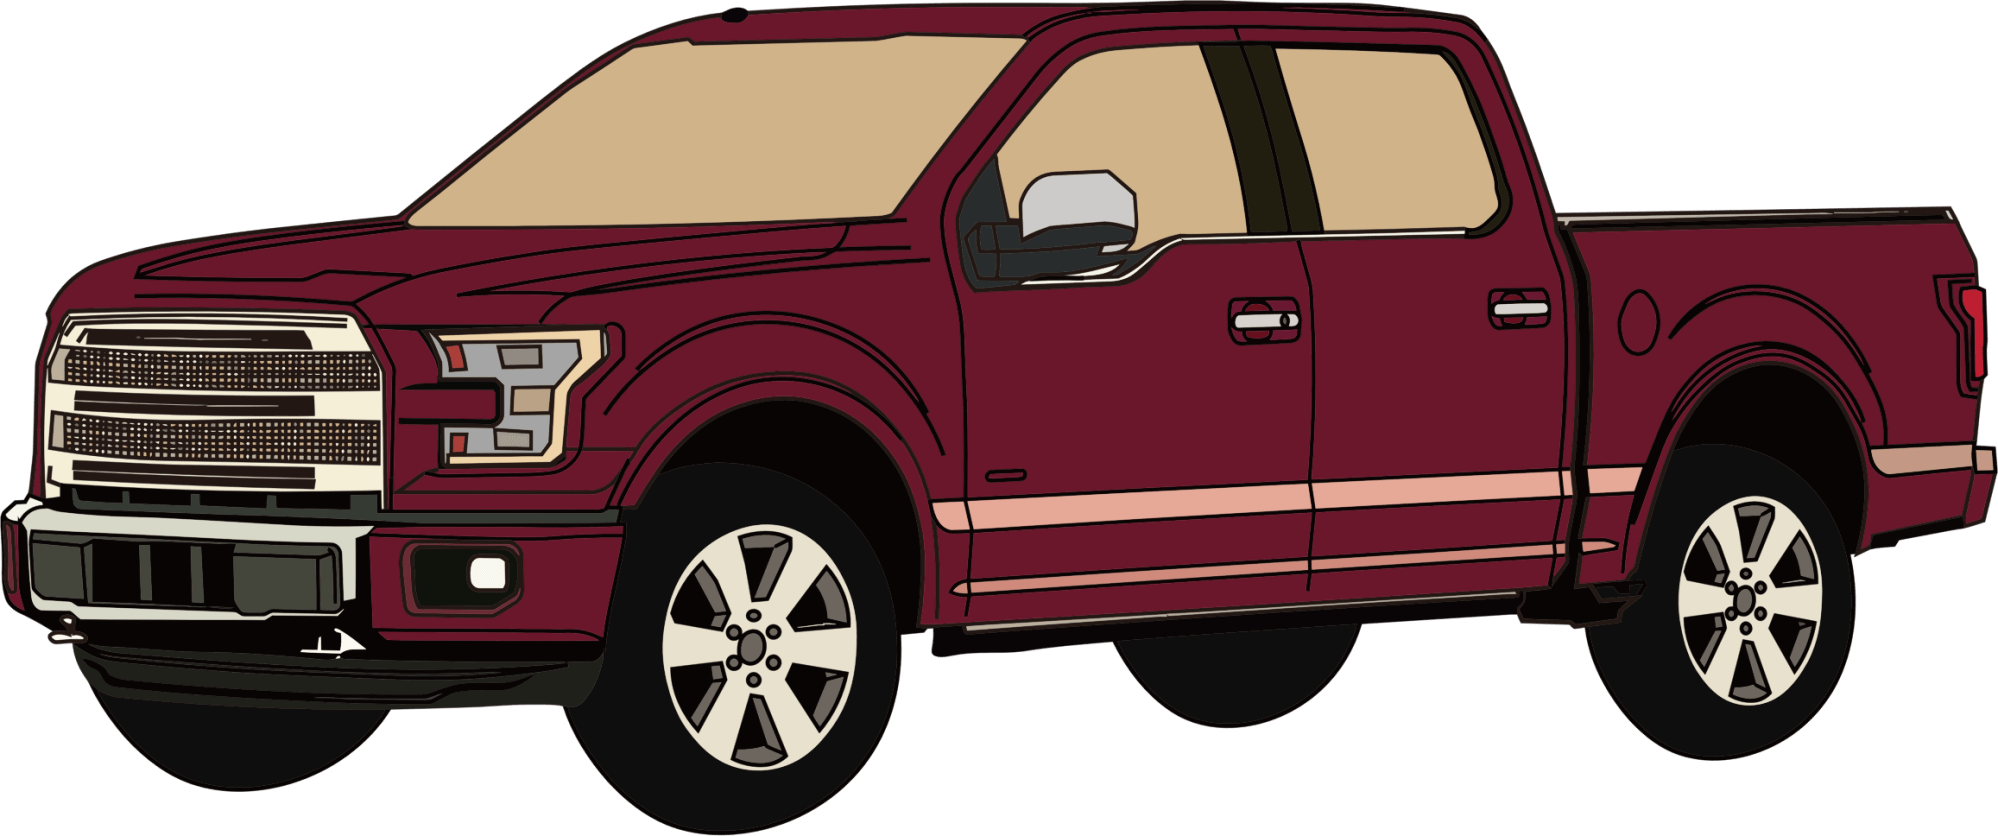 hight resolution of pickup truck clipart free images clipartix image